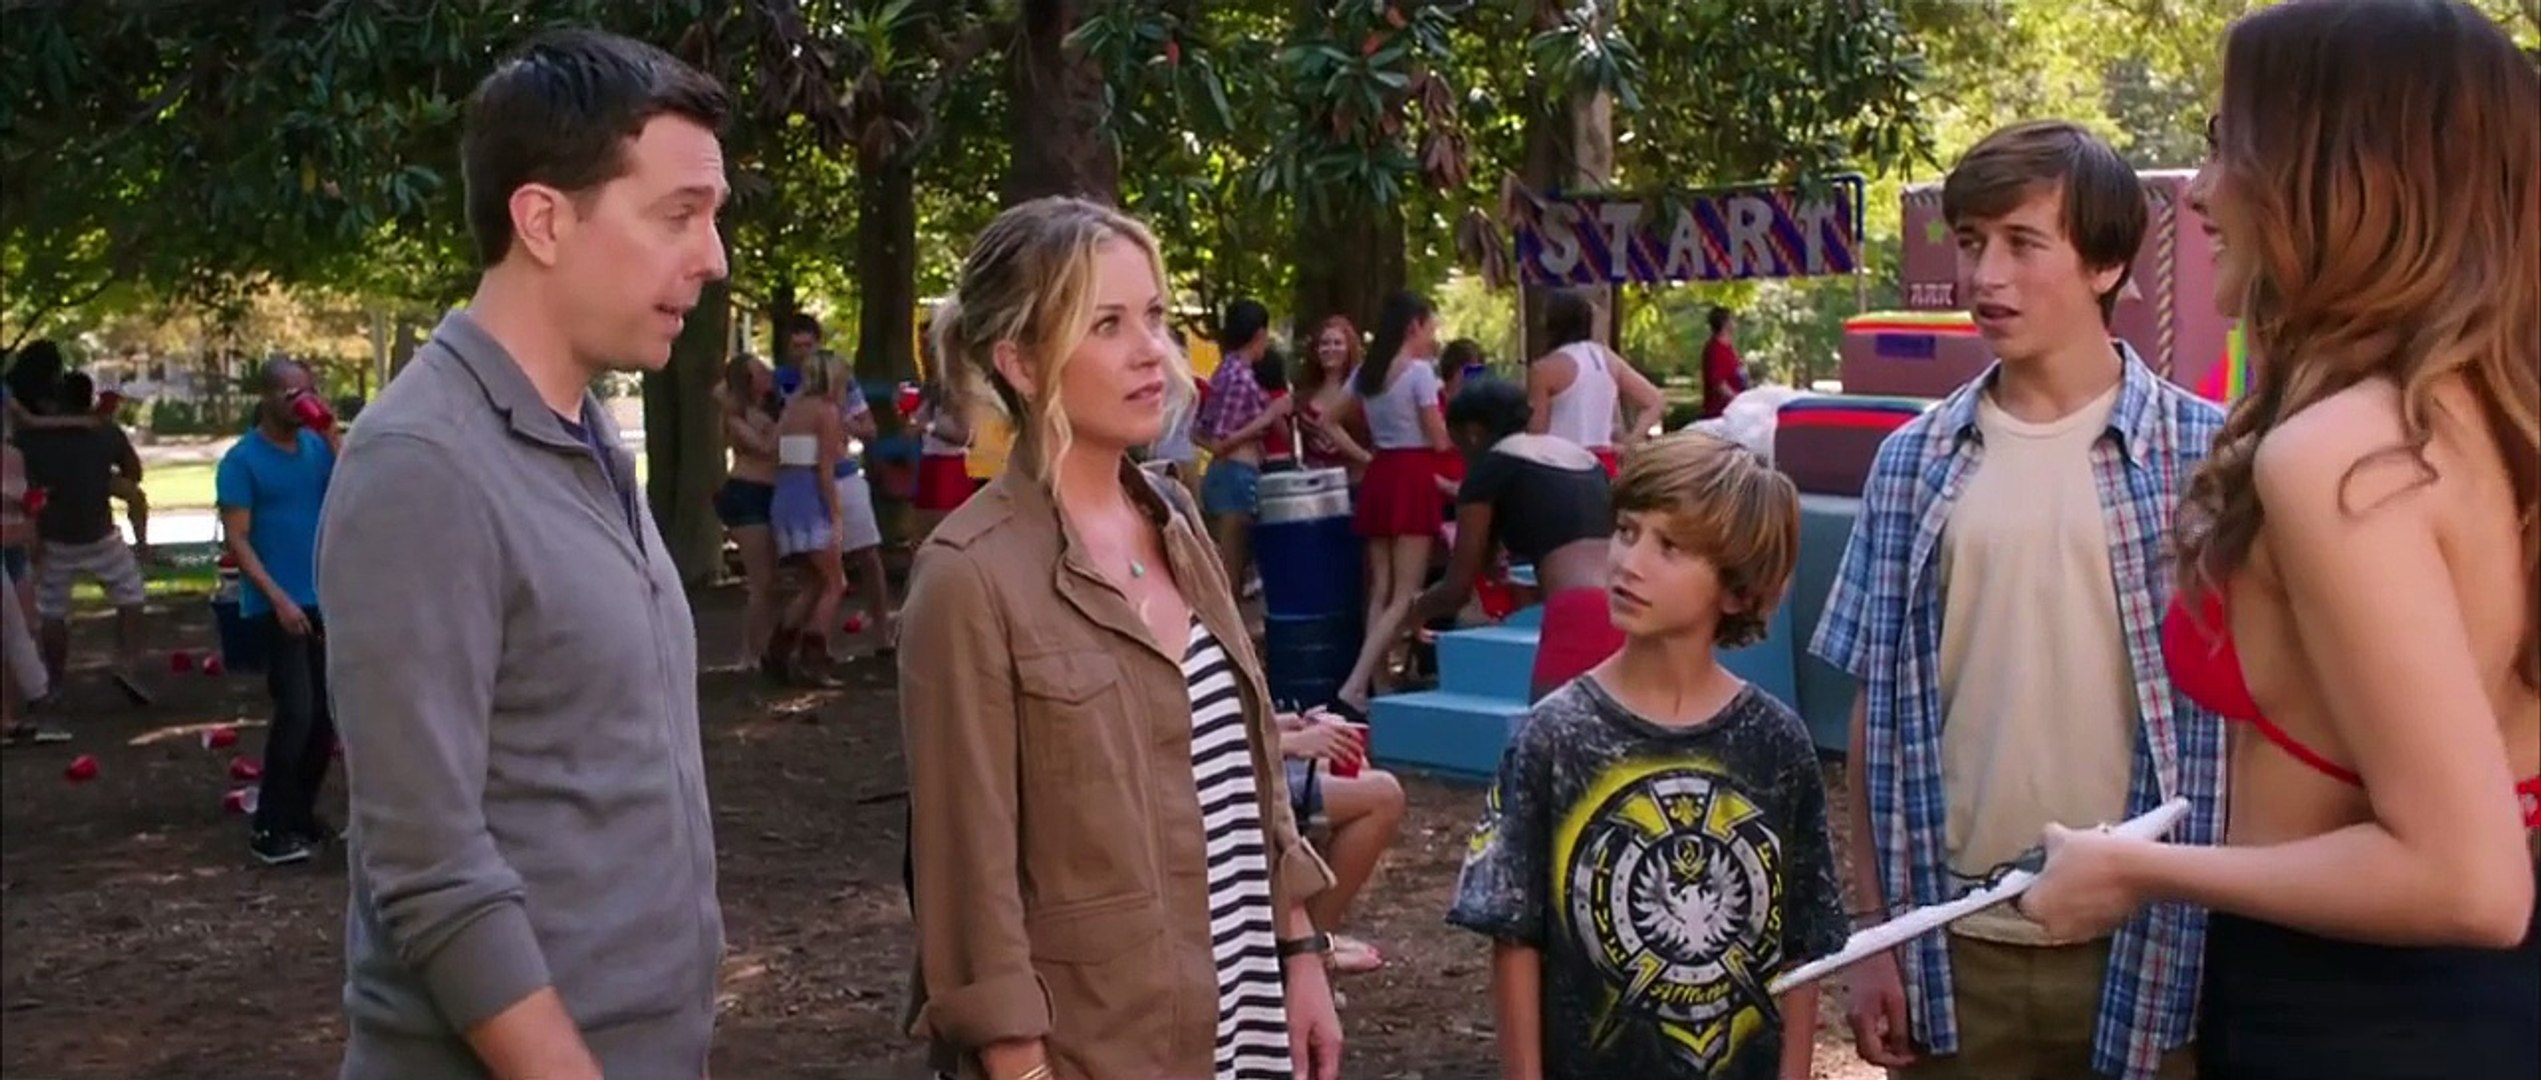 Vacation Official Red Band Trailer #2 (2015) Ed Helms, Christina Applegate Movie HD